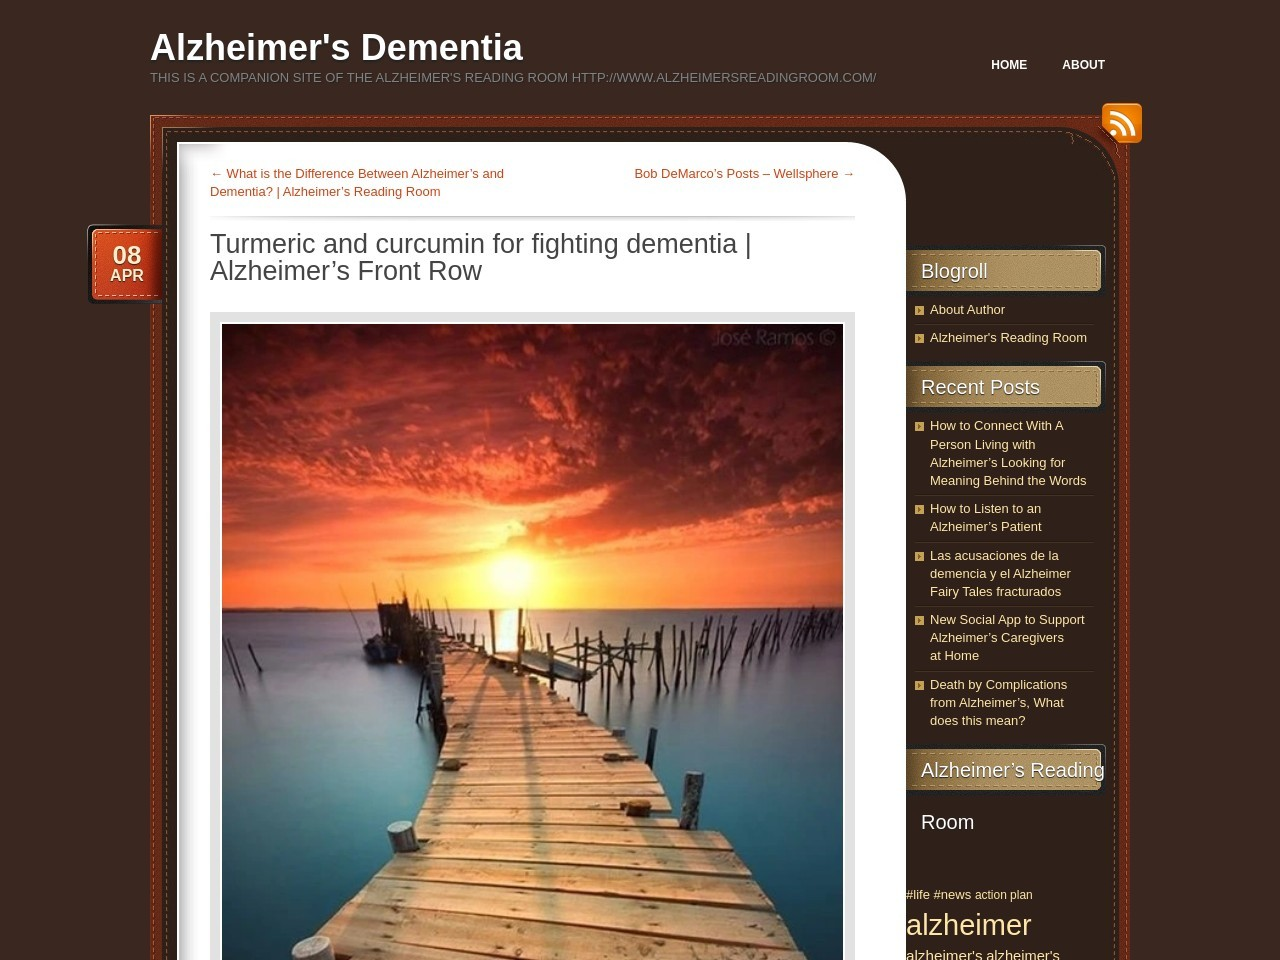 Turmeric and curcumin for fighting dementia | Alzheimer's …